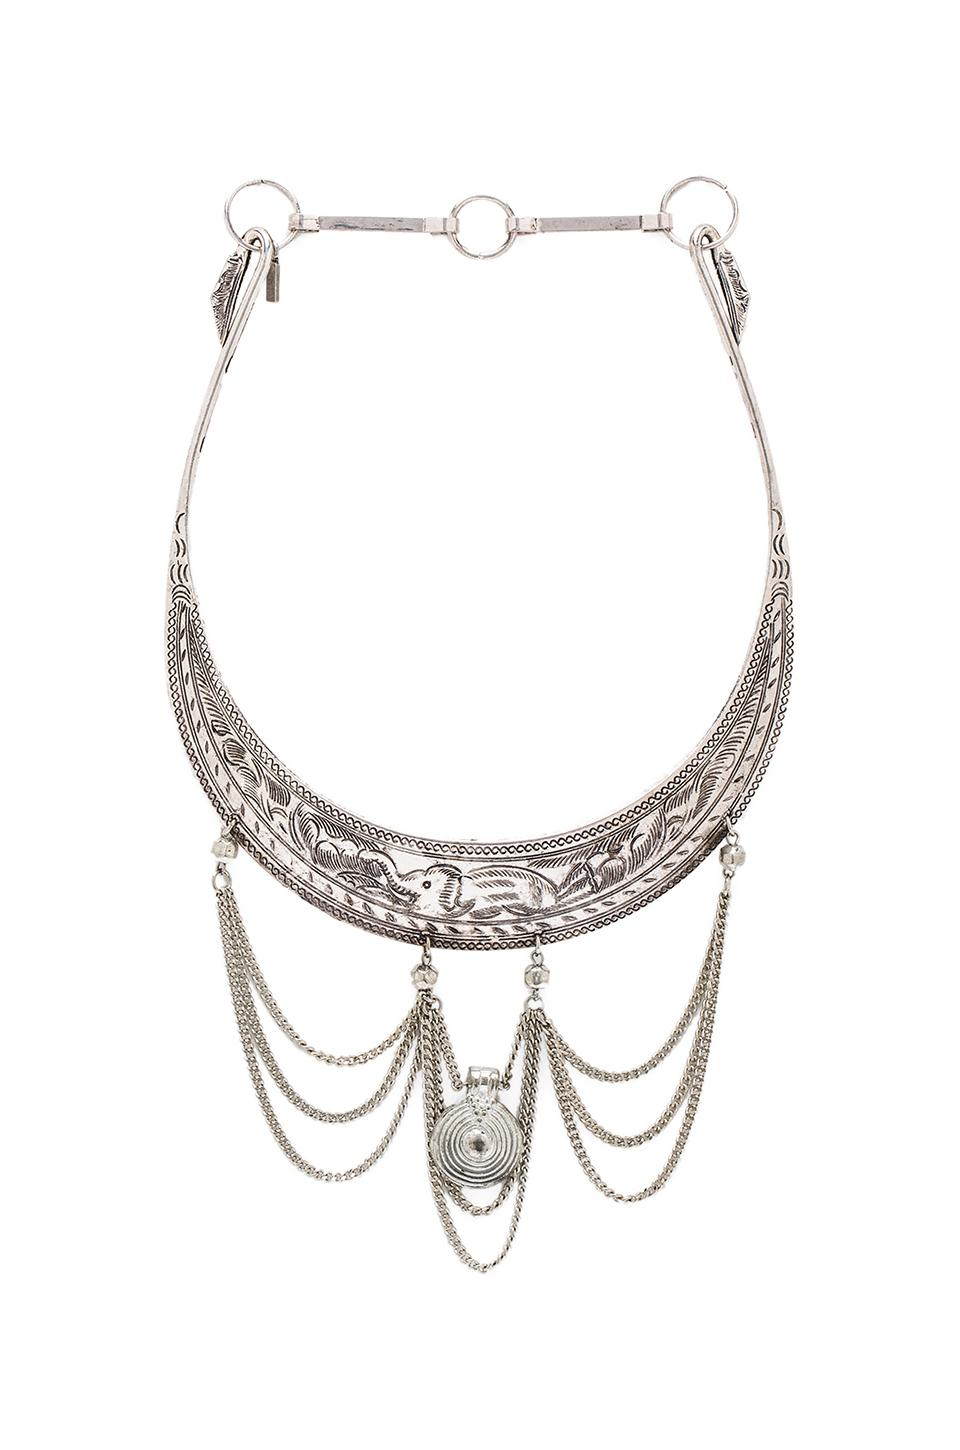 Vanessa Mooney Nebulous Statement Necklace in Silver